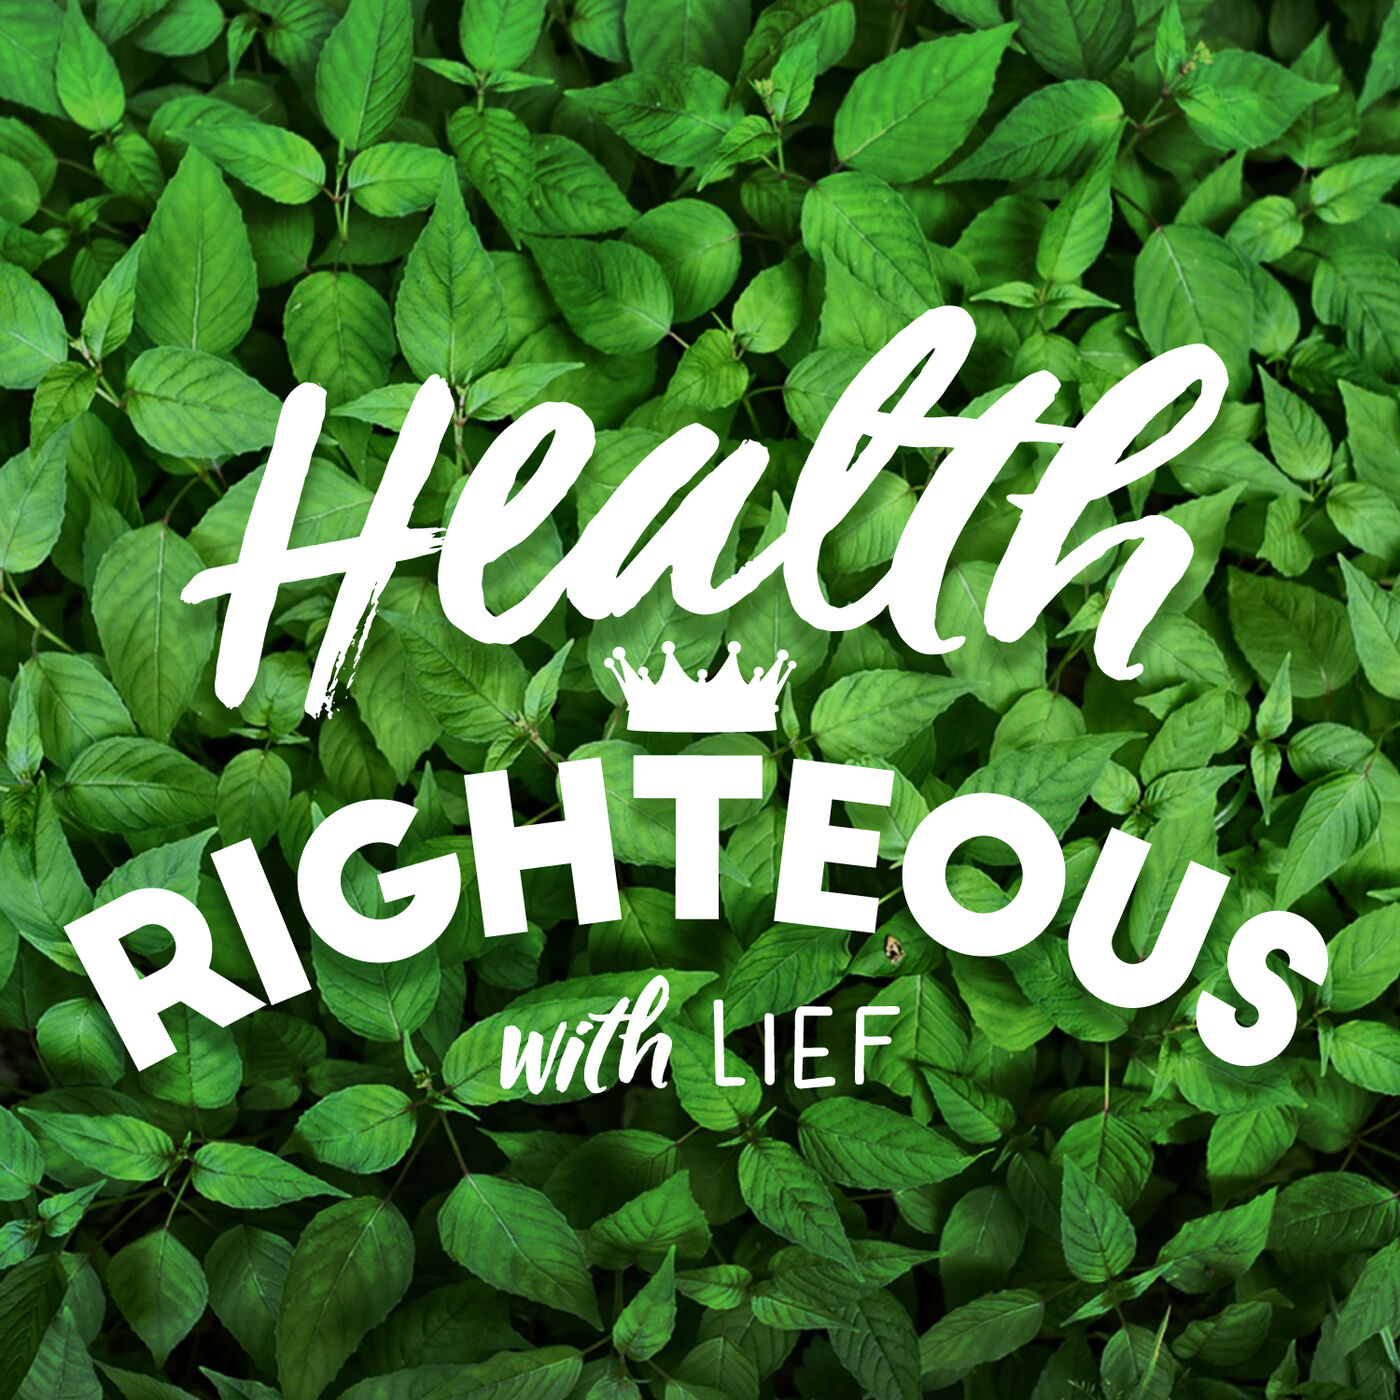 Health Righteous